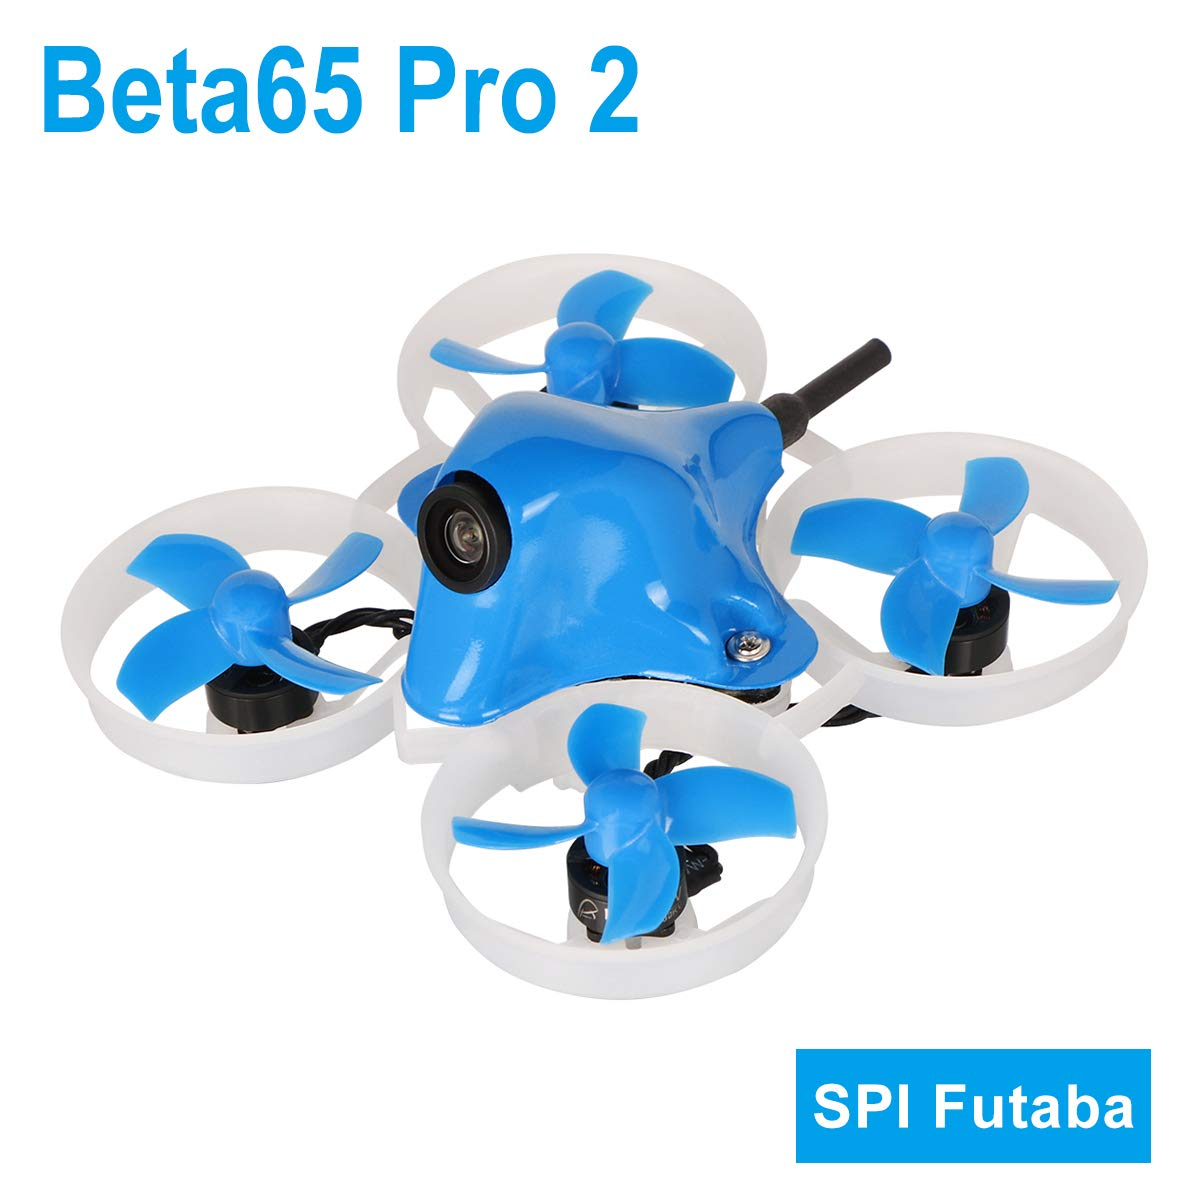 BETAFPV Beta65 Pro 2 Brushless Whoop Drone with 2S F4 AIO FC Futaba RX 5A ESC 25mW Camera 35 Degree OSD Smart Audio 12000KV 0802 Motor PH2.0 Cable for Tiny Whoop FPV Racing B07M61C49B  Futaba